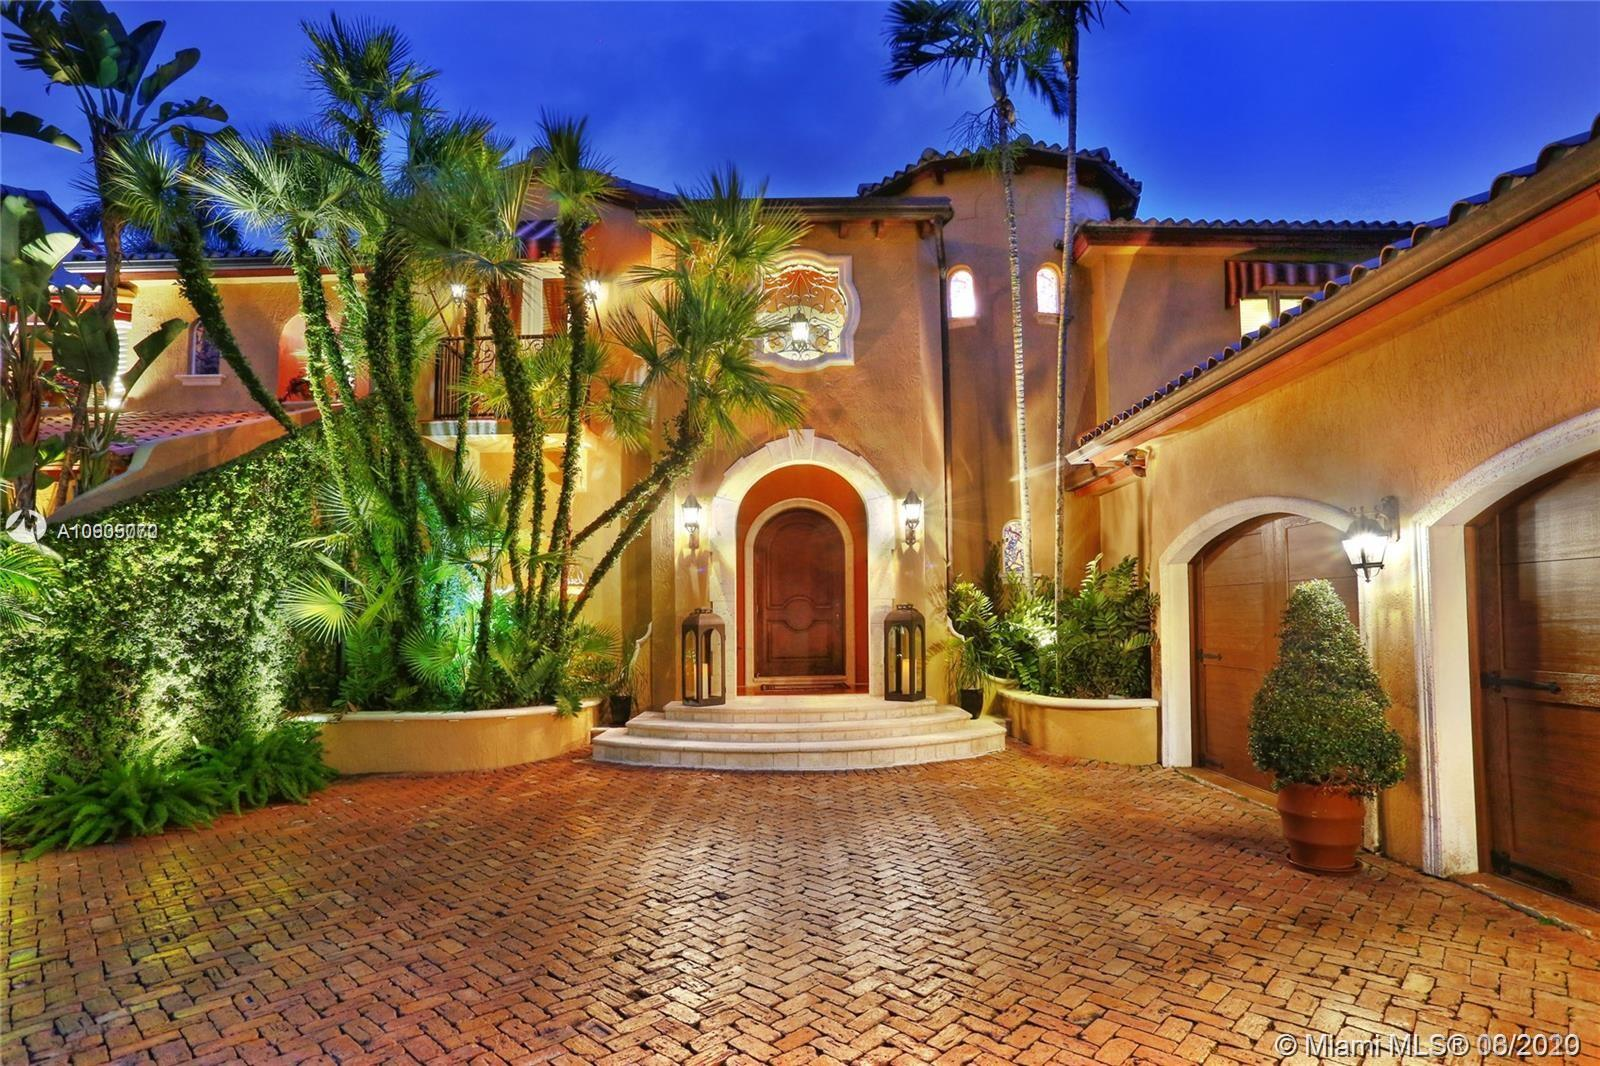 Stunning Spanish Villa - A rare opportunity to enjoy the exclusive guarded/gated Hammock Oaks with double slips w/75' boat dock in marina,ocean access to Biscayne Bay! Distinctive architectural design with timeless grace and elegance. High ceilings,marble & wood flooring. Utmost attention to exquisite details.Extraordinary mill work & authentic Spanish stone/tile accents. Lovingly cared for & updated to perfection!Formal living & dining.Newly renovated gourmet chef's dream kitchen with all top of line appliances.Family/media room w/state of art audio/video systems.Wine cellar, full bar. All new baths! Lavish master suite w/ balcony and beautiful vistas!!Gorgeous landscaping, Large exterior patio/gazebo with built-in grill. Sports court. 3 car-garage w/car lift. A magnificent masterpiece!!